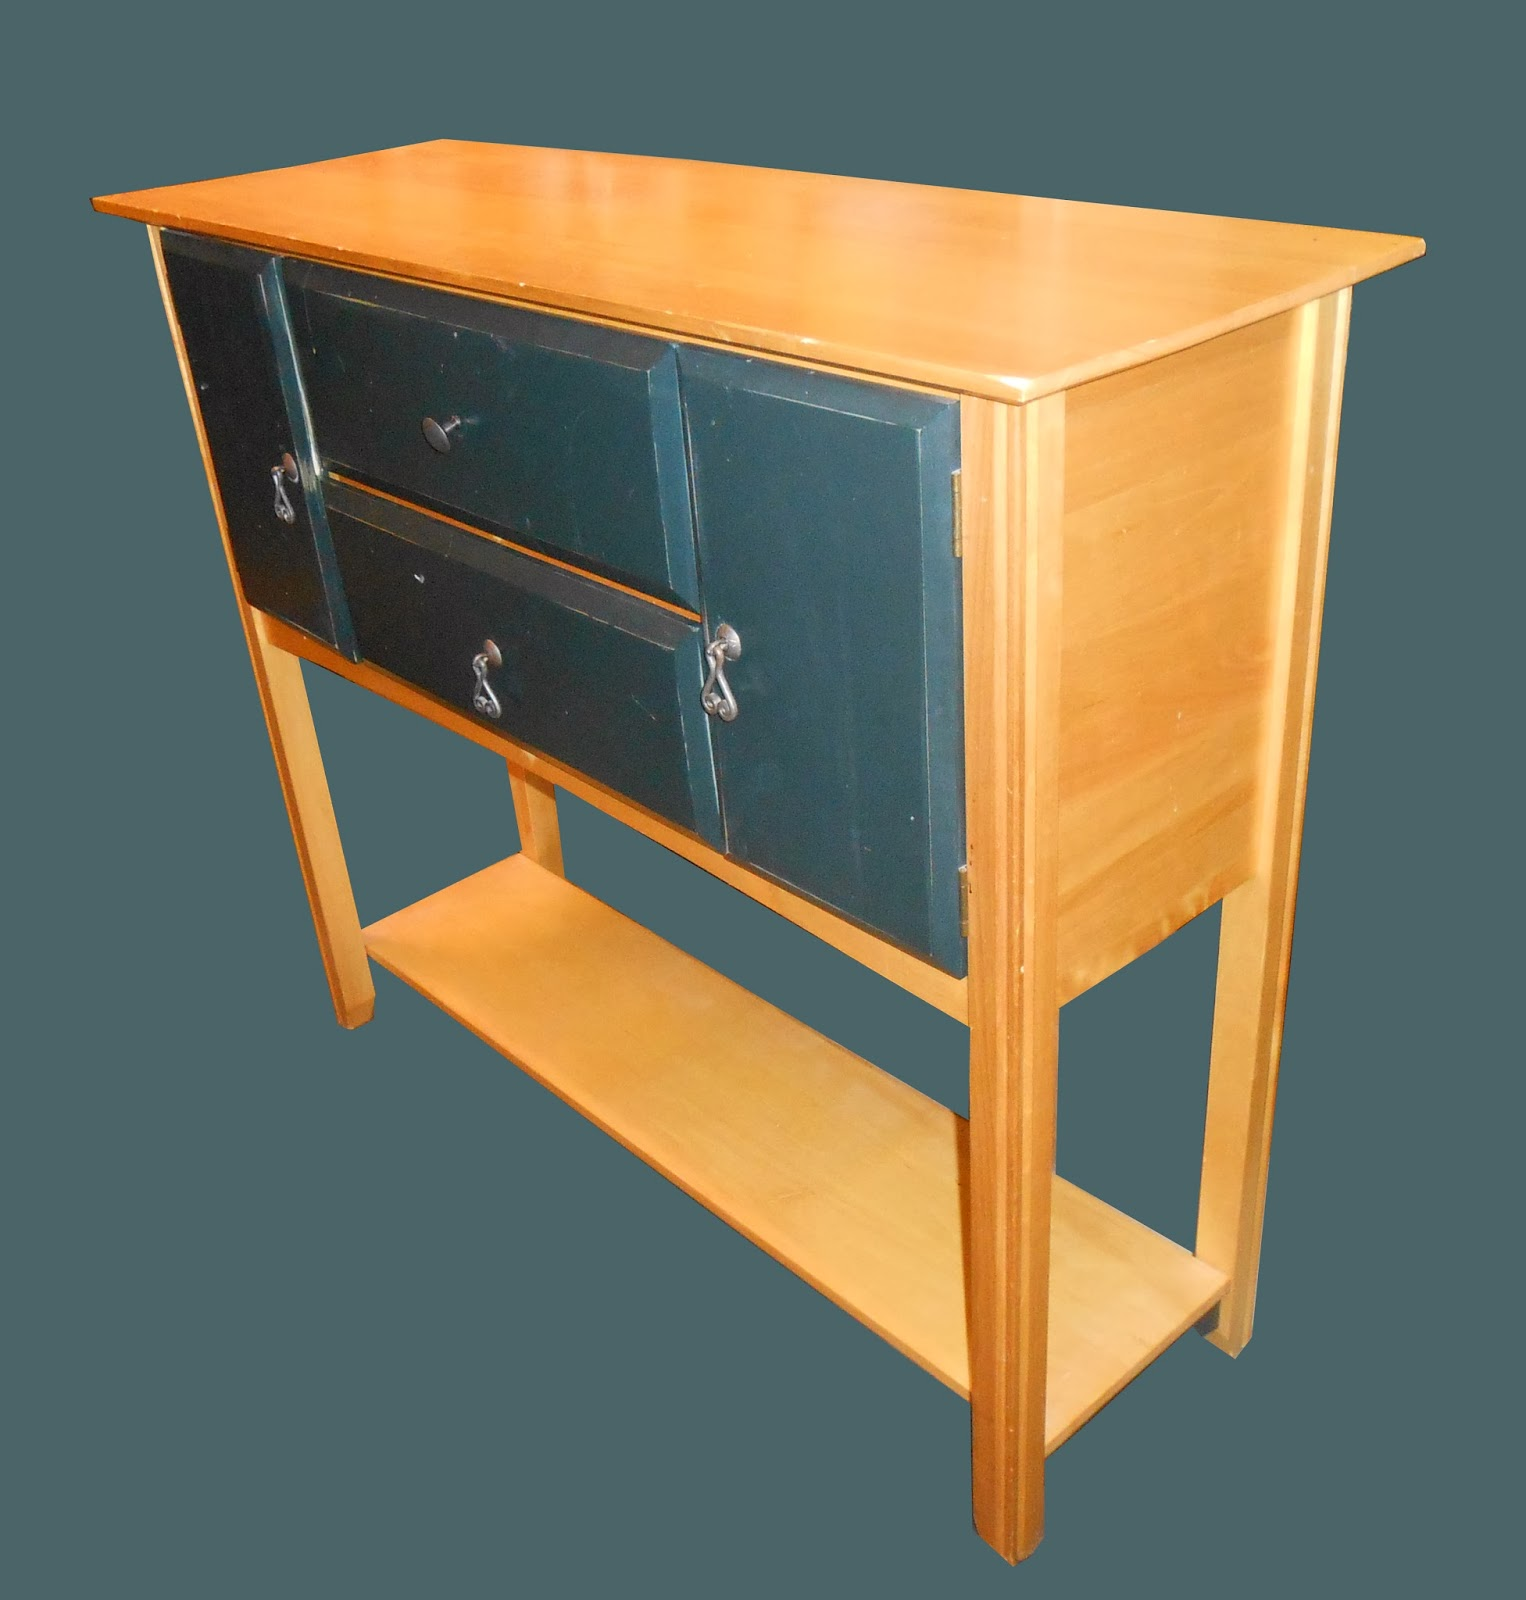 Uhuru Furniture & Collectibles: Birch Wood Kitchen Island